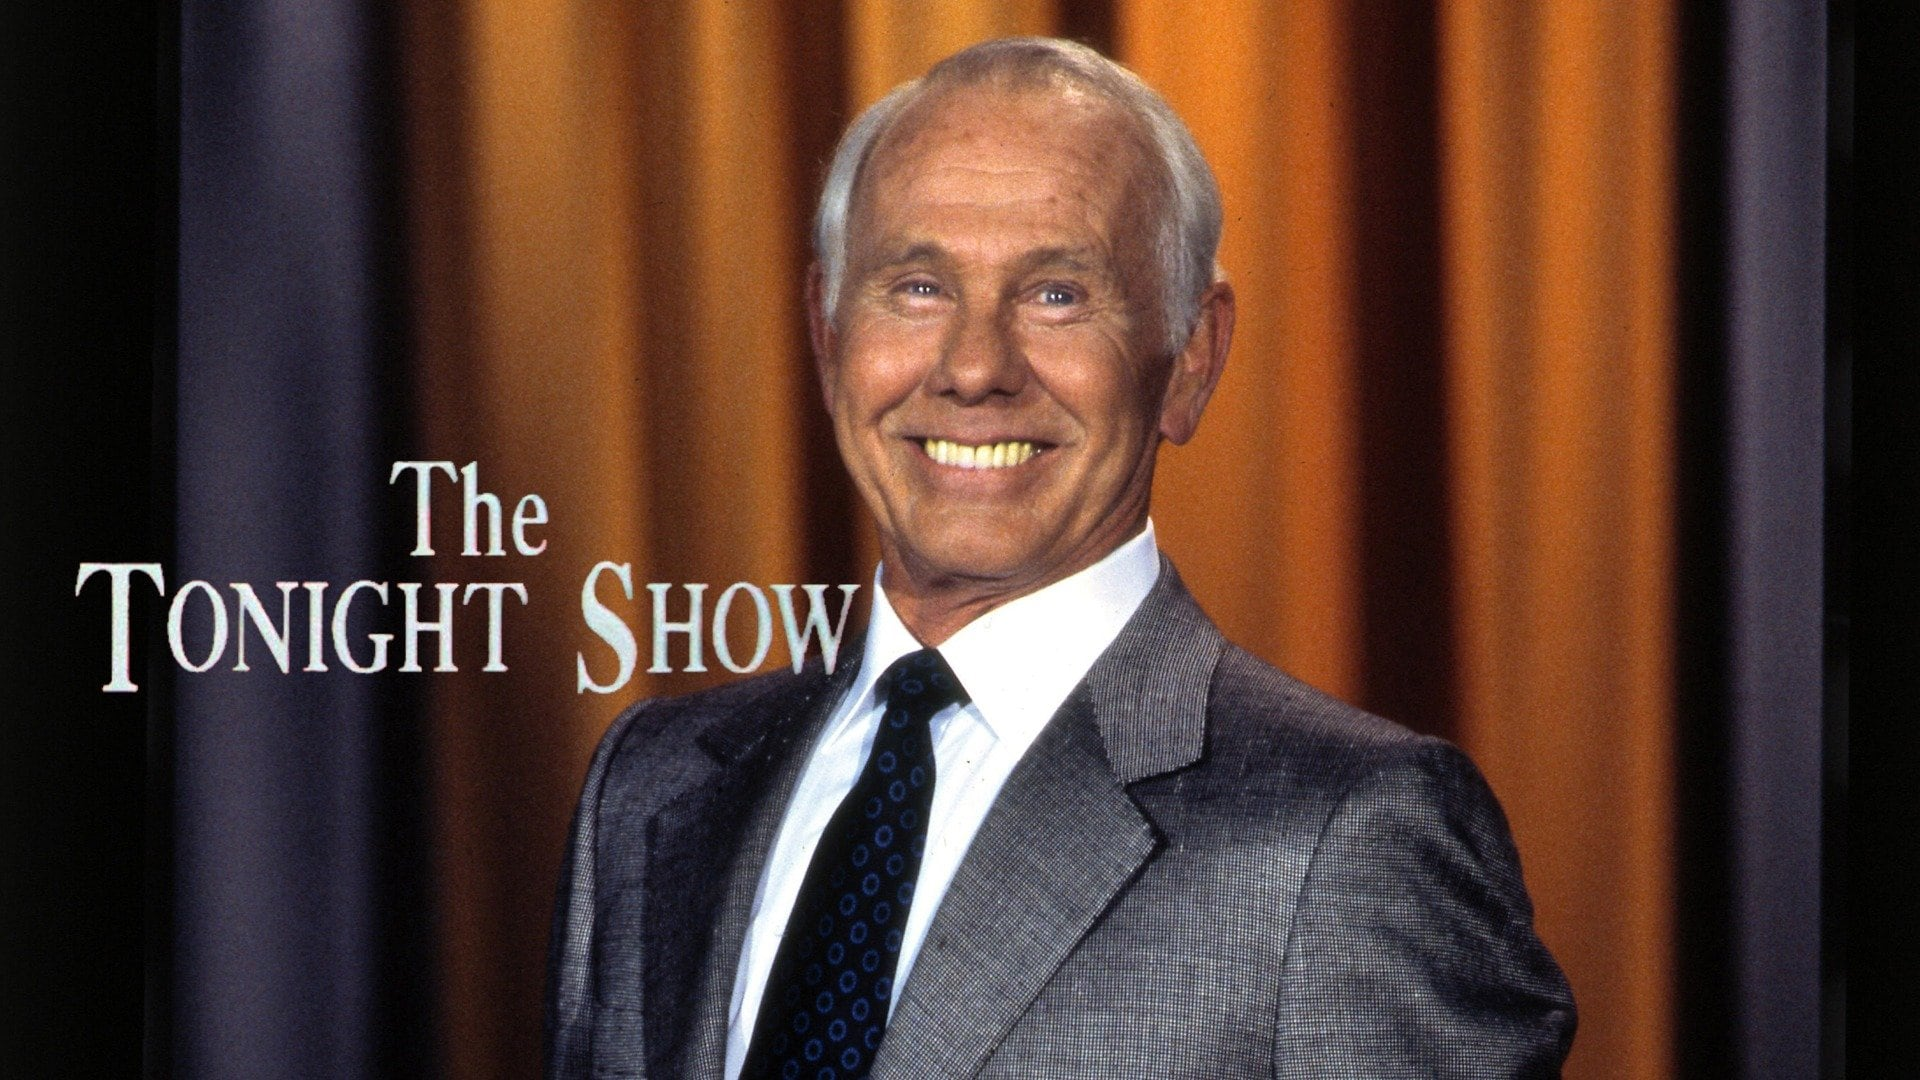 The Johnny Carson Show: Comic Legends Of The '80s - Charles Grodin (9/5/90)